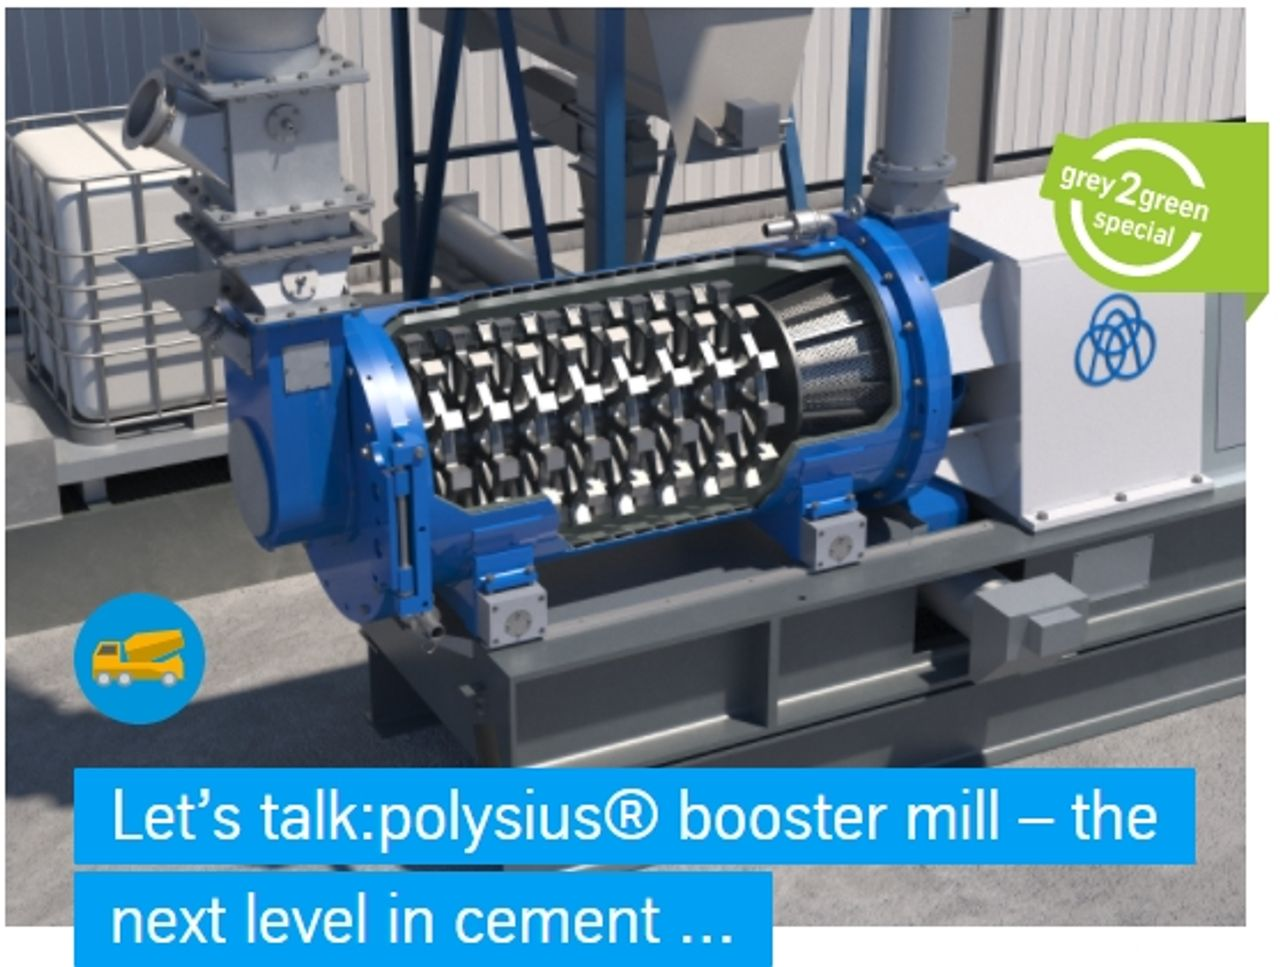 Reducing the clinker factor without compromising quality and the rising demand for high-performance cements are great challenges for the fine grinding technology used in cement plants. As part of its green cement plant project, thyssenkrupp has expanded its product range with the polysius® booster mill. While one cement manufacturer has already integrated the mill into his existing grinding circuit, several others have tested the mill since August 2020 and are checking results in terms of specific business cases. Michael Wilczek, Senior Data Specialist and Dr. Guido Kache, Senior Process Engineer inform about the design of the new mill and the results obtained during the operation of the pilot plants.